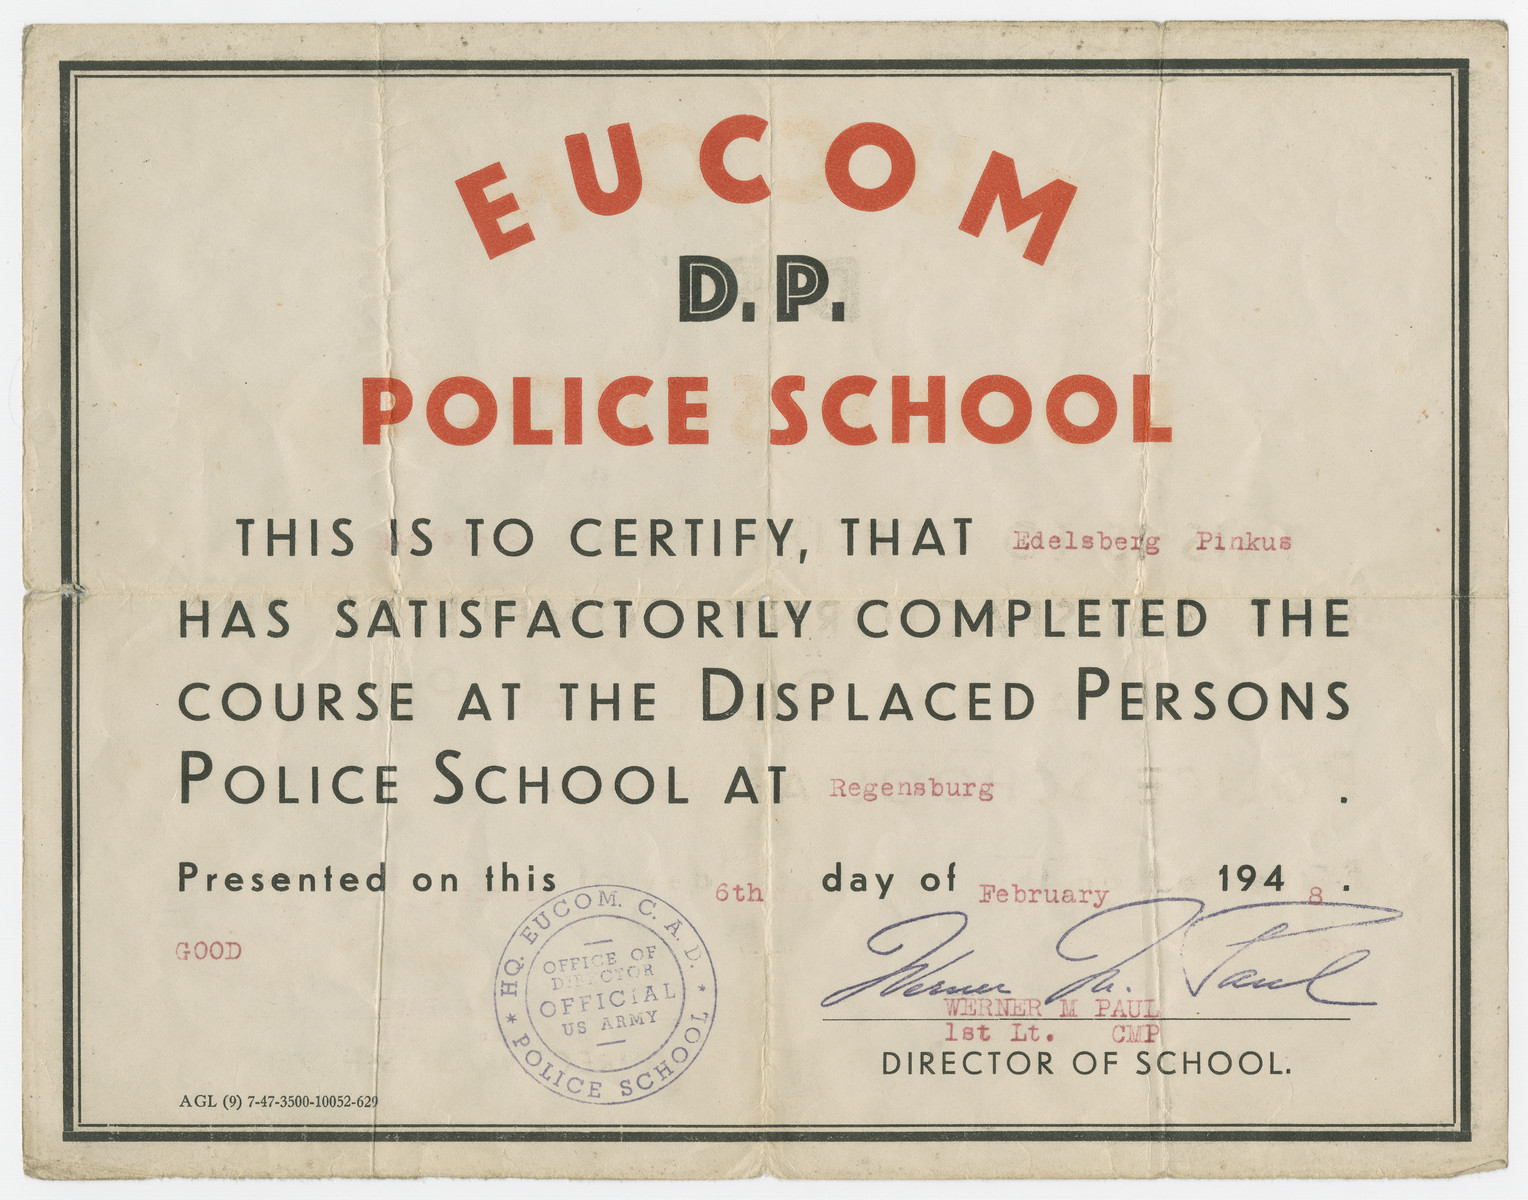 Certificate attesting that Pinkus Edelsberg completed the displaced persons police school.